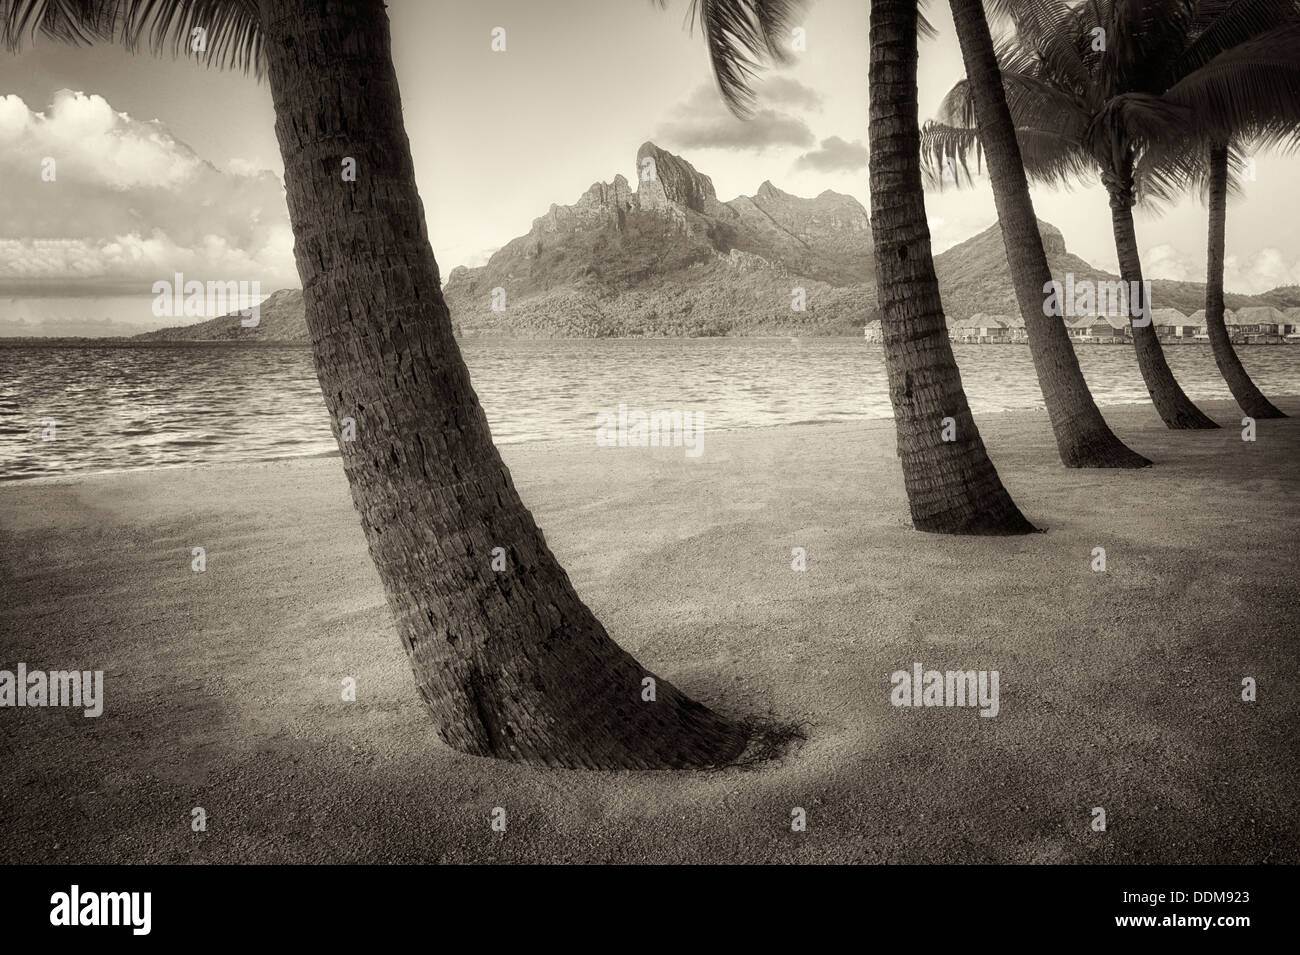 Sandy beach with palm trees and Mt. Otemanu. Bora Bora. French Polynesia. - Stock Image